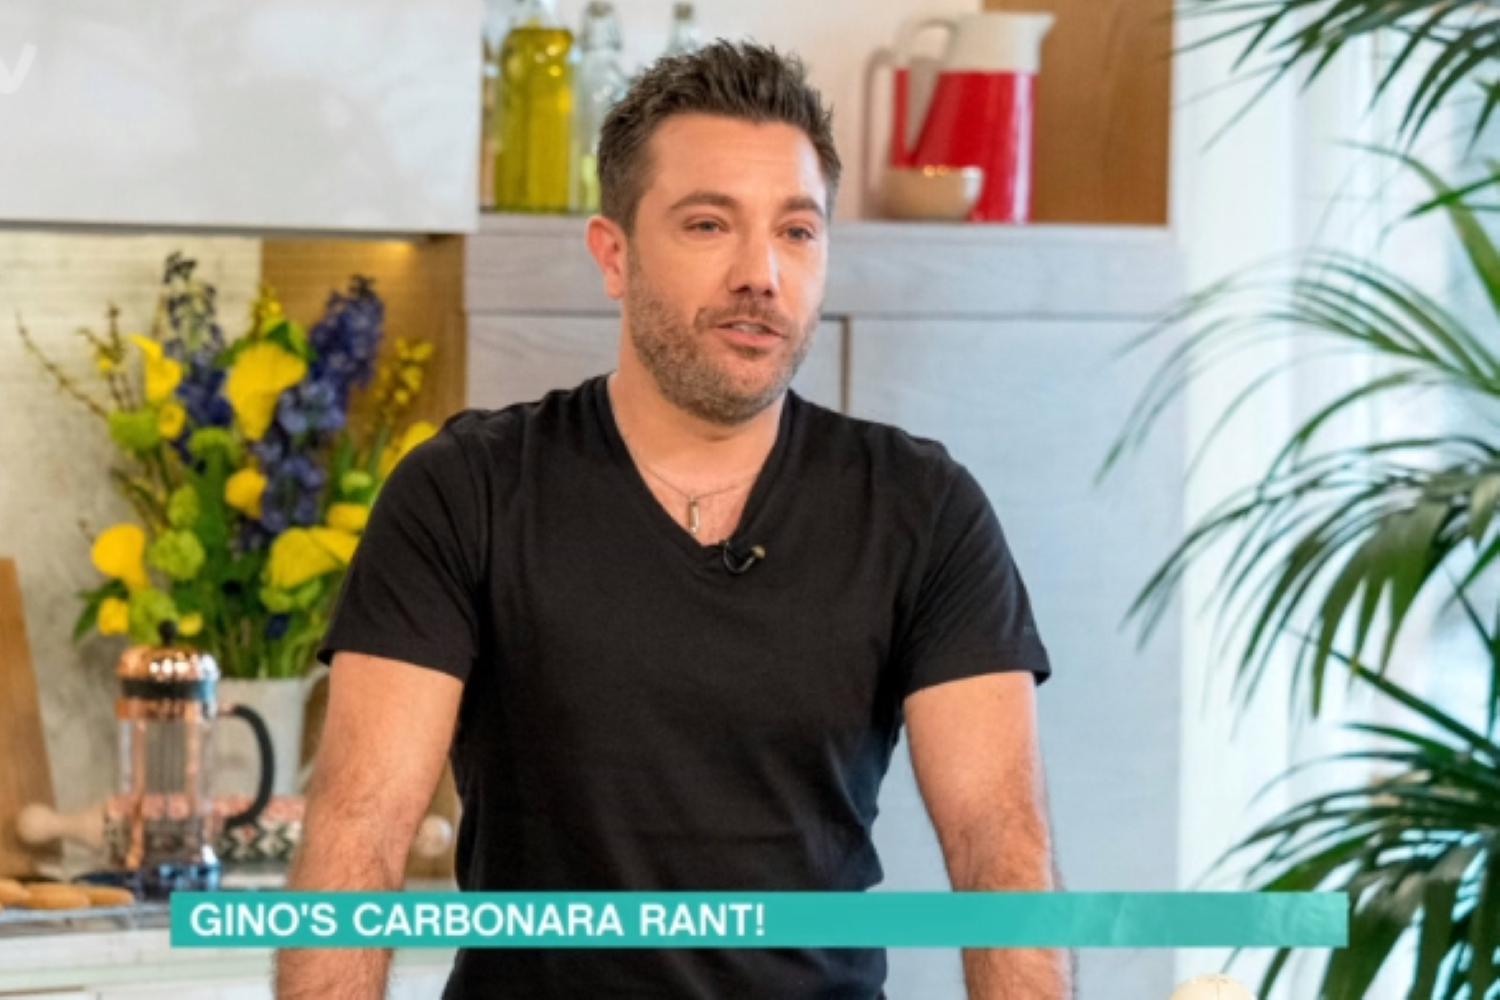 Gino D'Acampo slams dish as 'fit for doggies' in This Morning rant